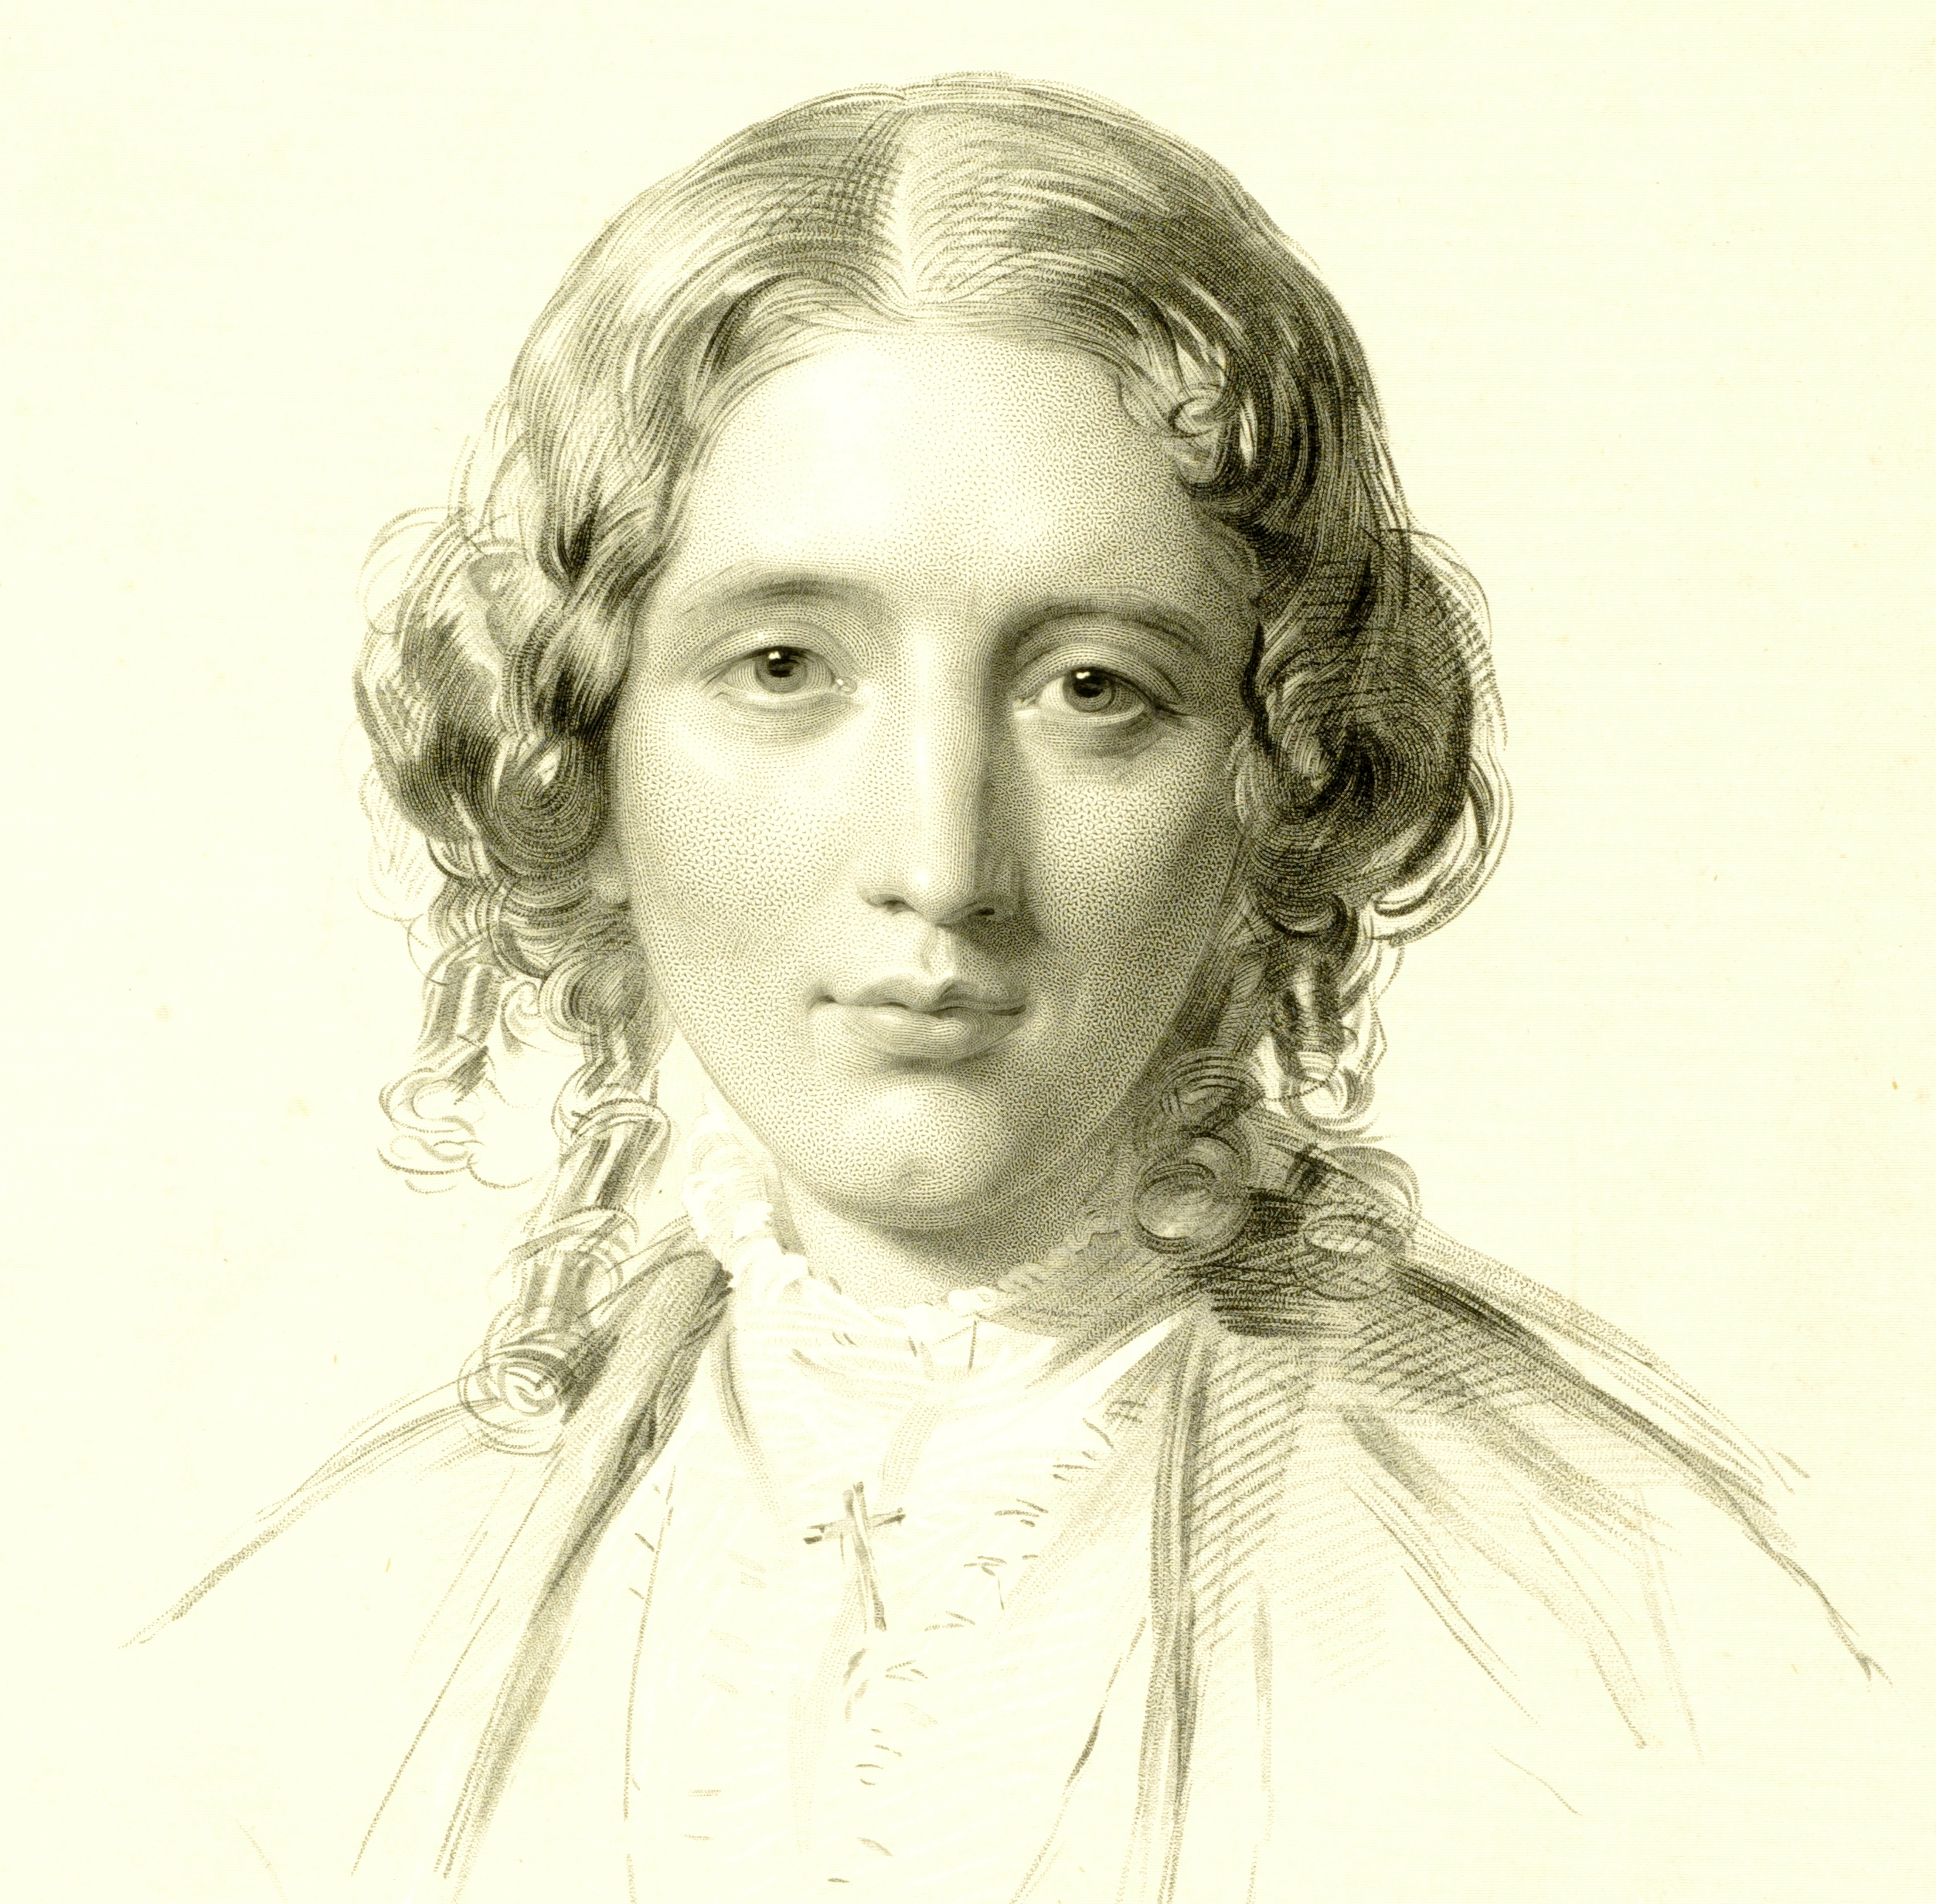 harriet beecher stowe portrait of harriet beecher stowe by francis holl 1853